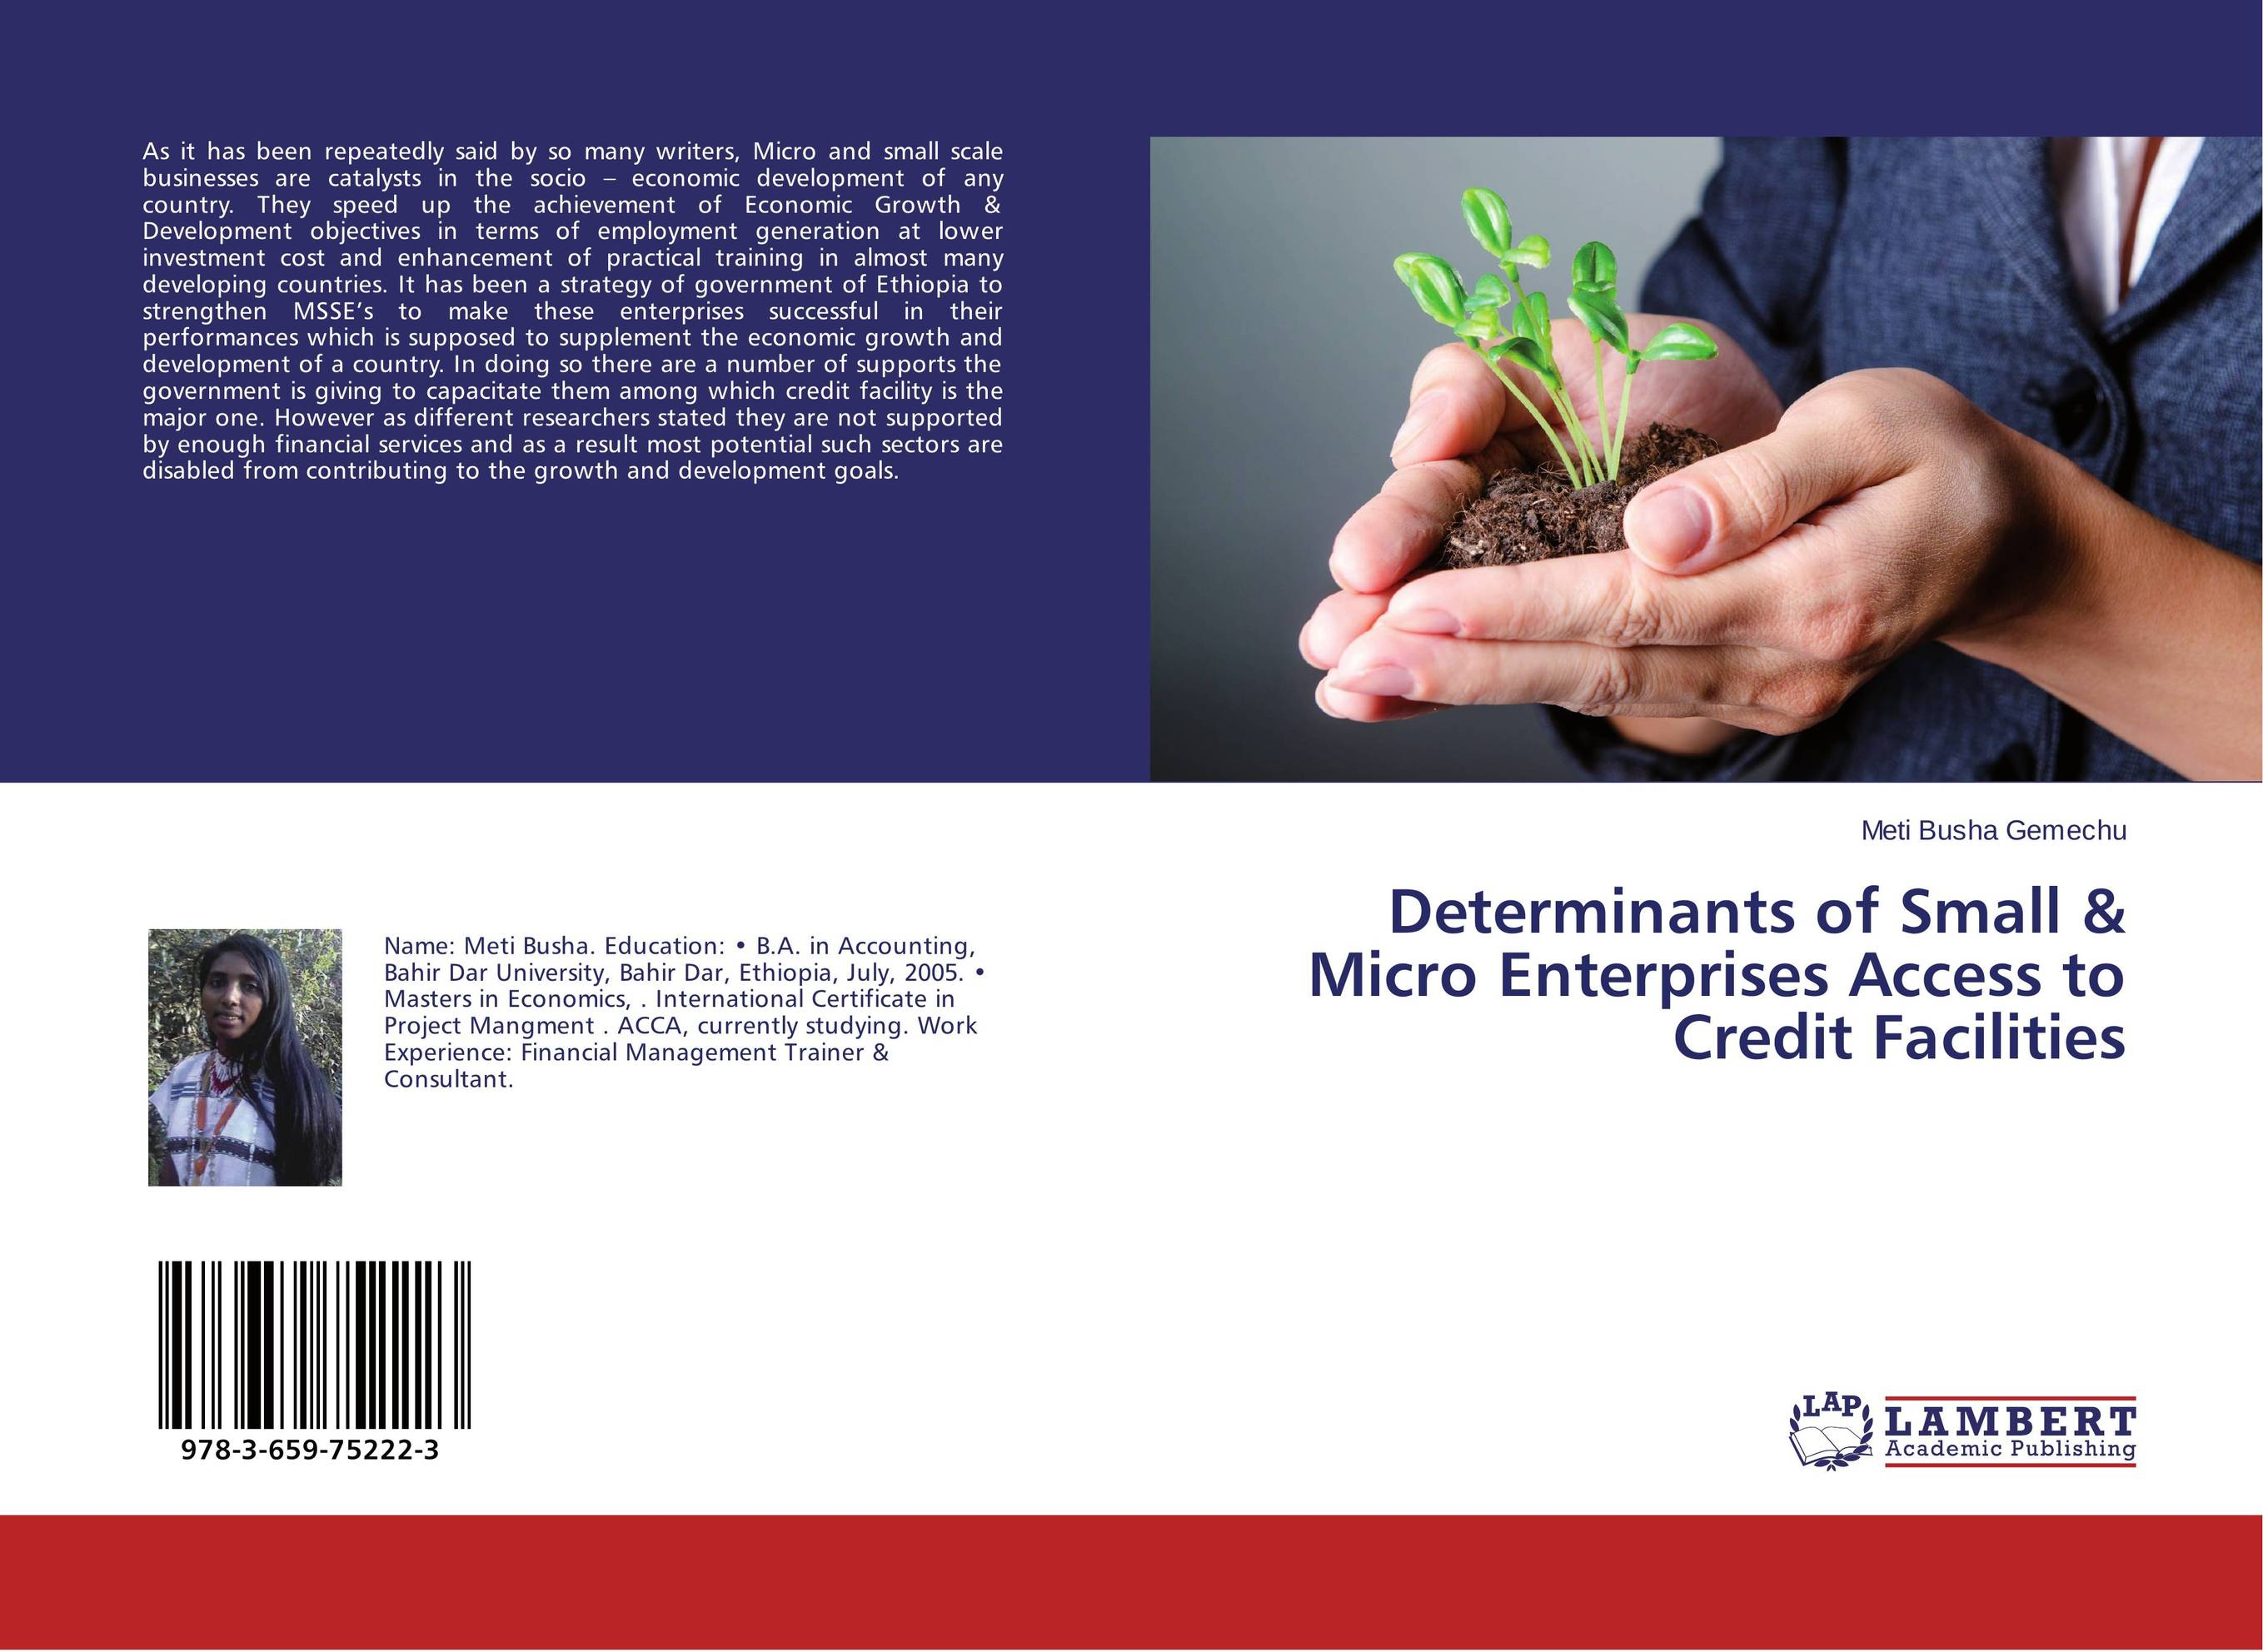 Determinants of Small & Micro Enterprises Access to Credit Facilities